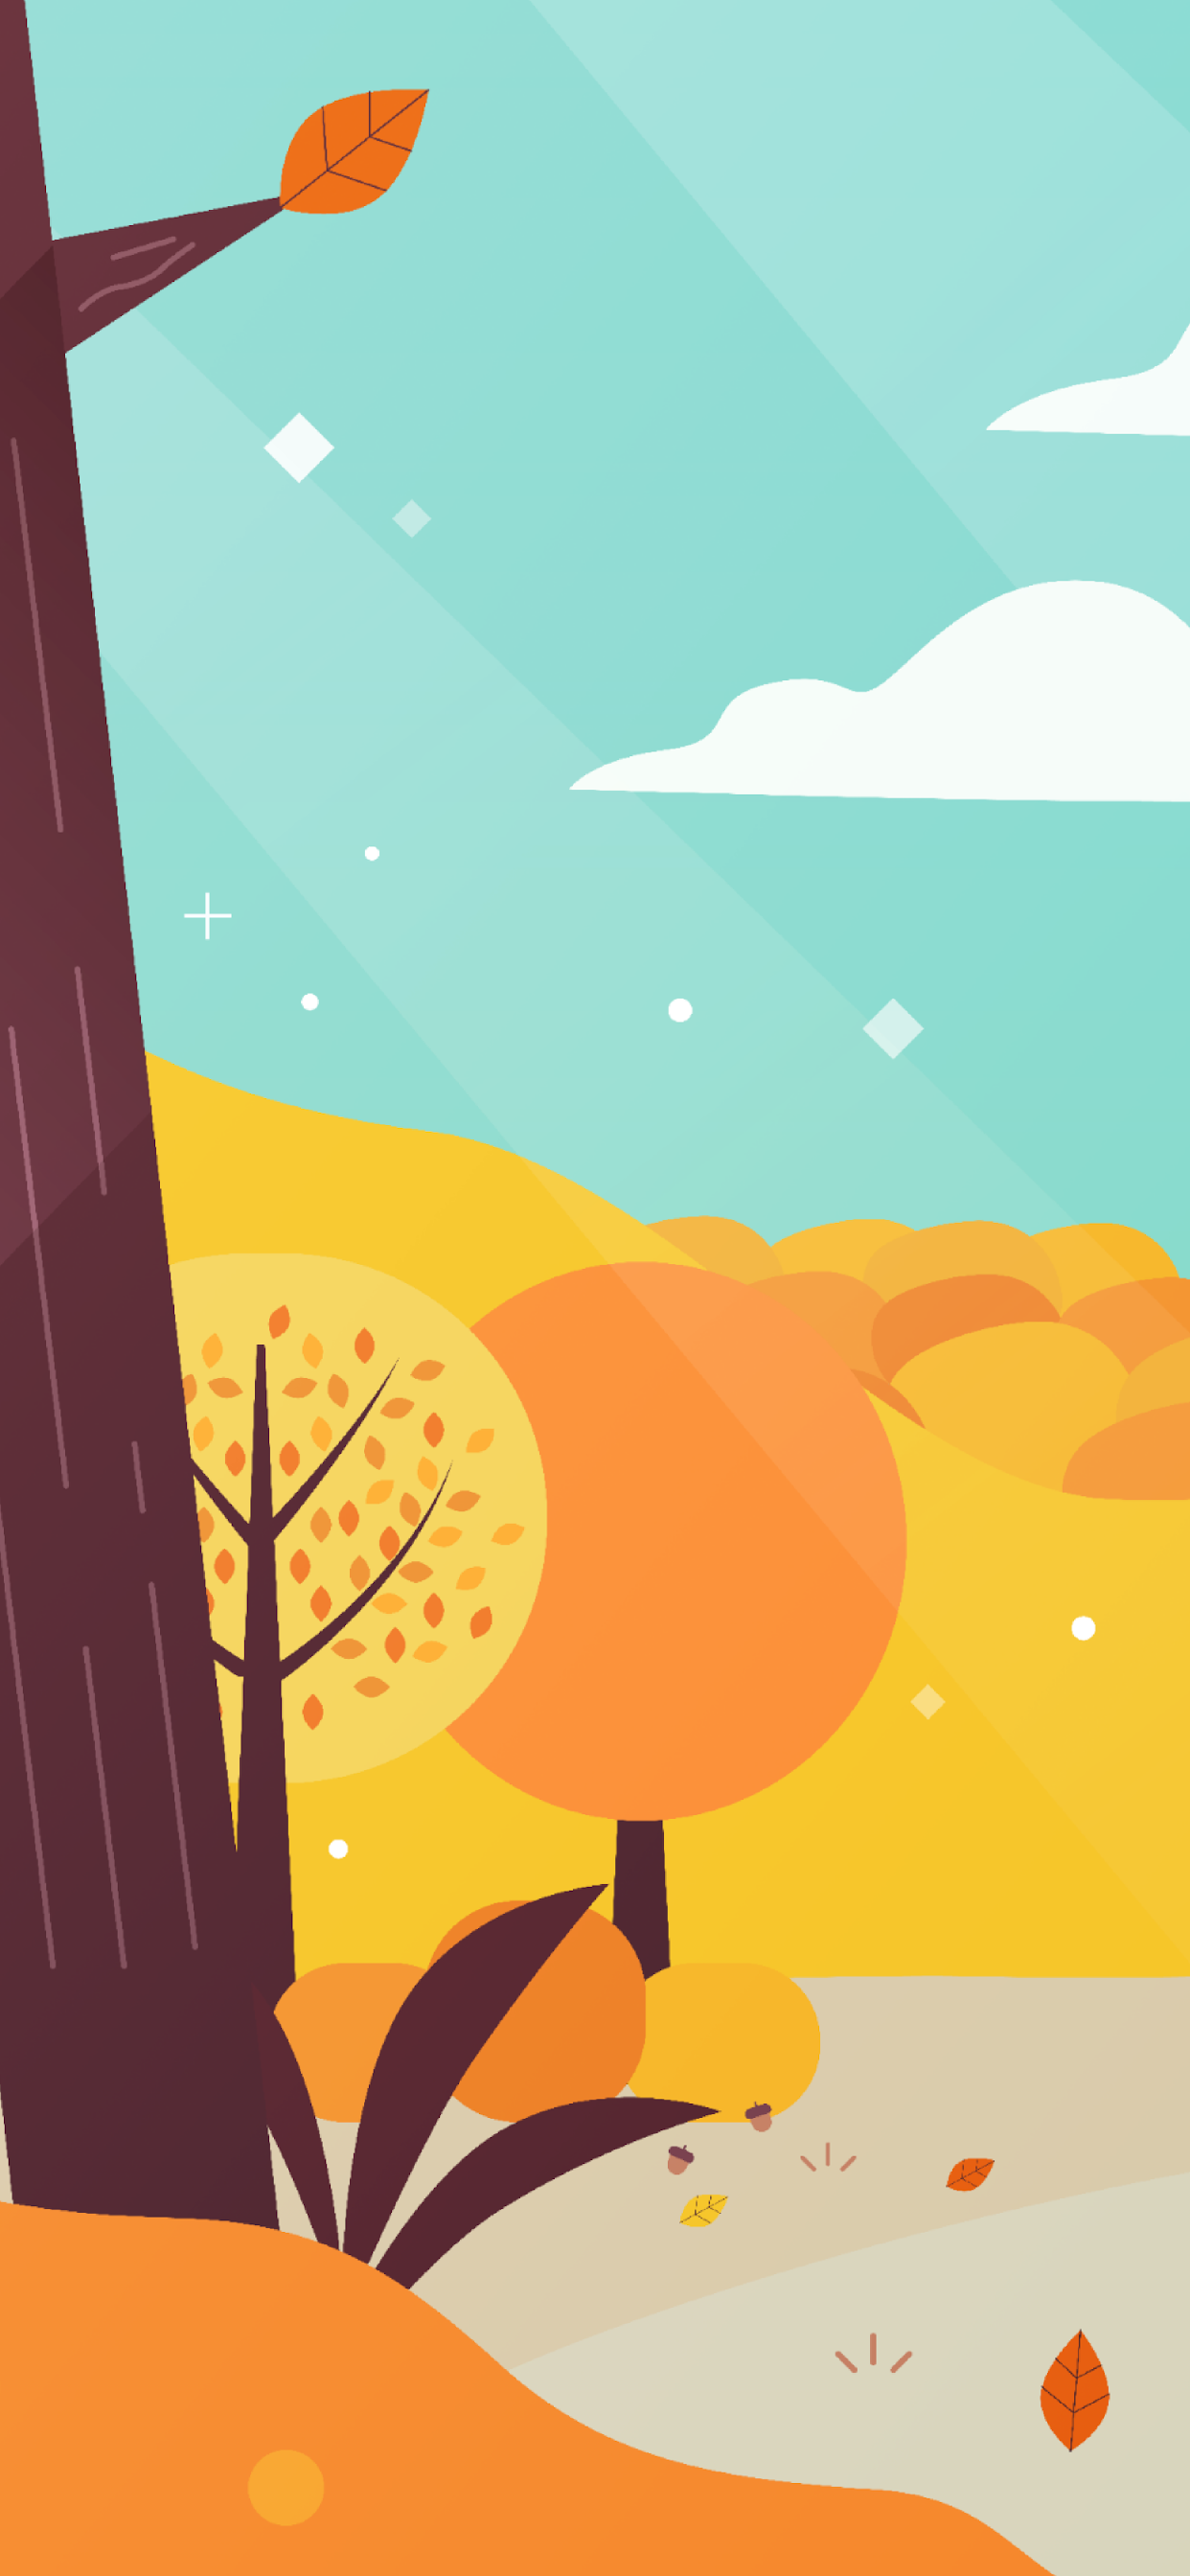 iPhone wallpapers illustration autumn landscape Fonds d'écran iPhone du 26/11/2019